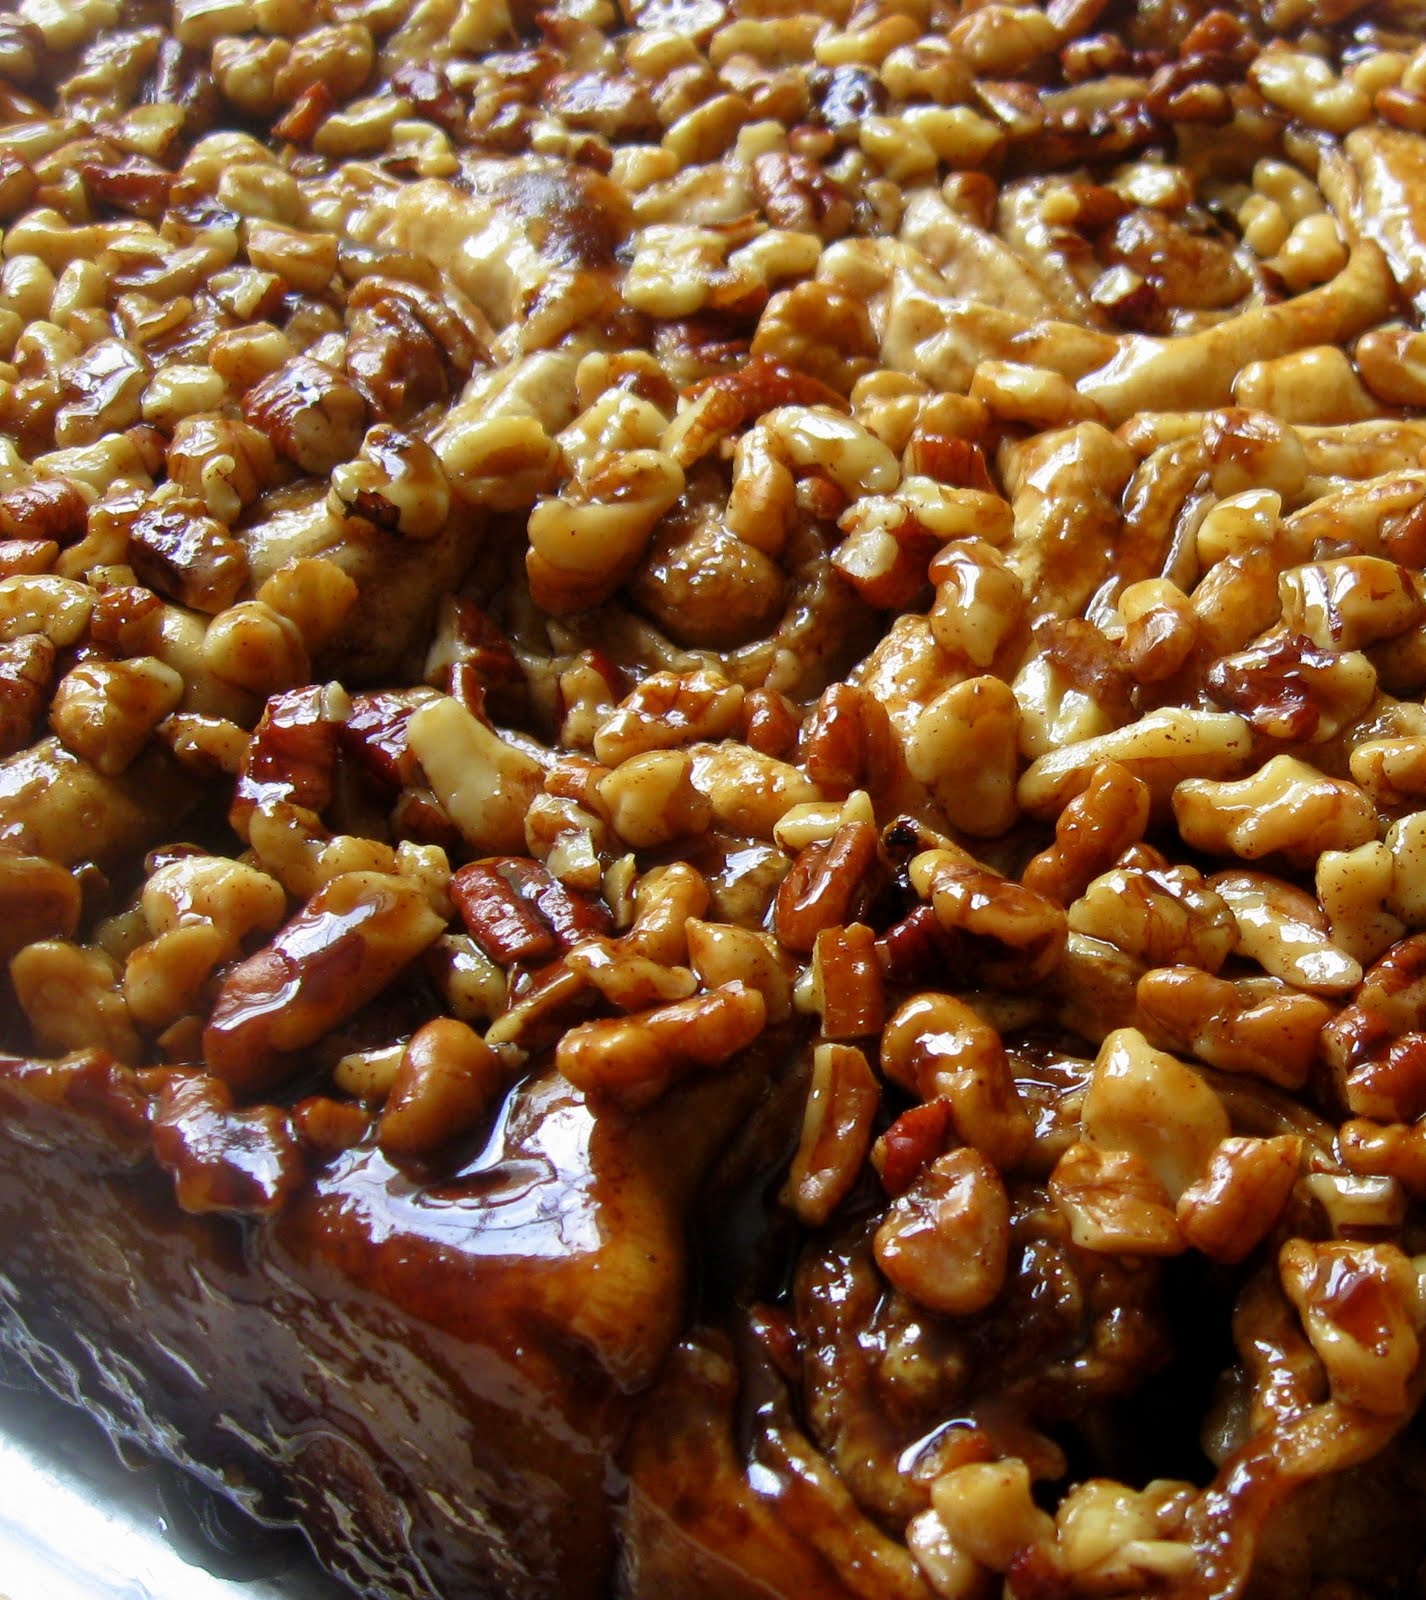 sticky buns sticky buns caramel pecan sticky buns bacon maple sticky ...